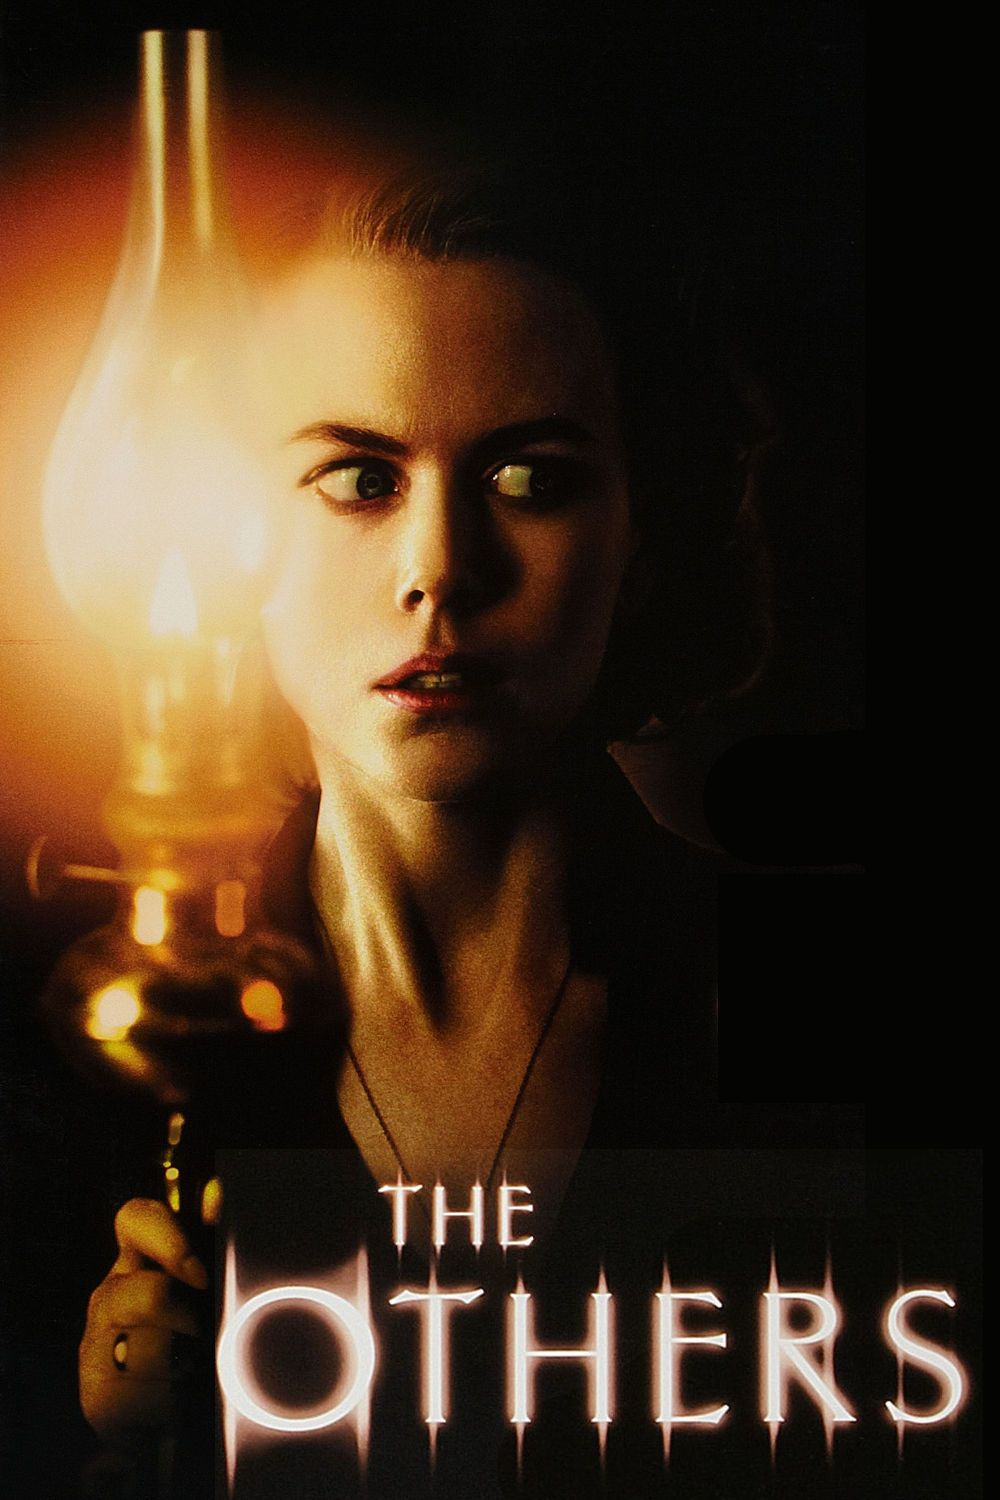 The Others Nicole Kidman Movies The Others Movie Best Horror Movies